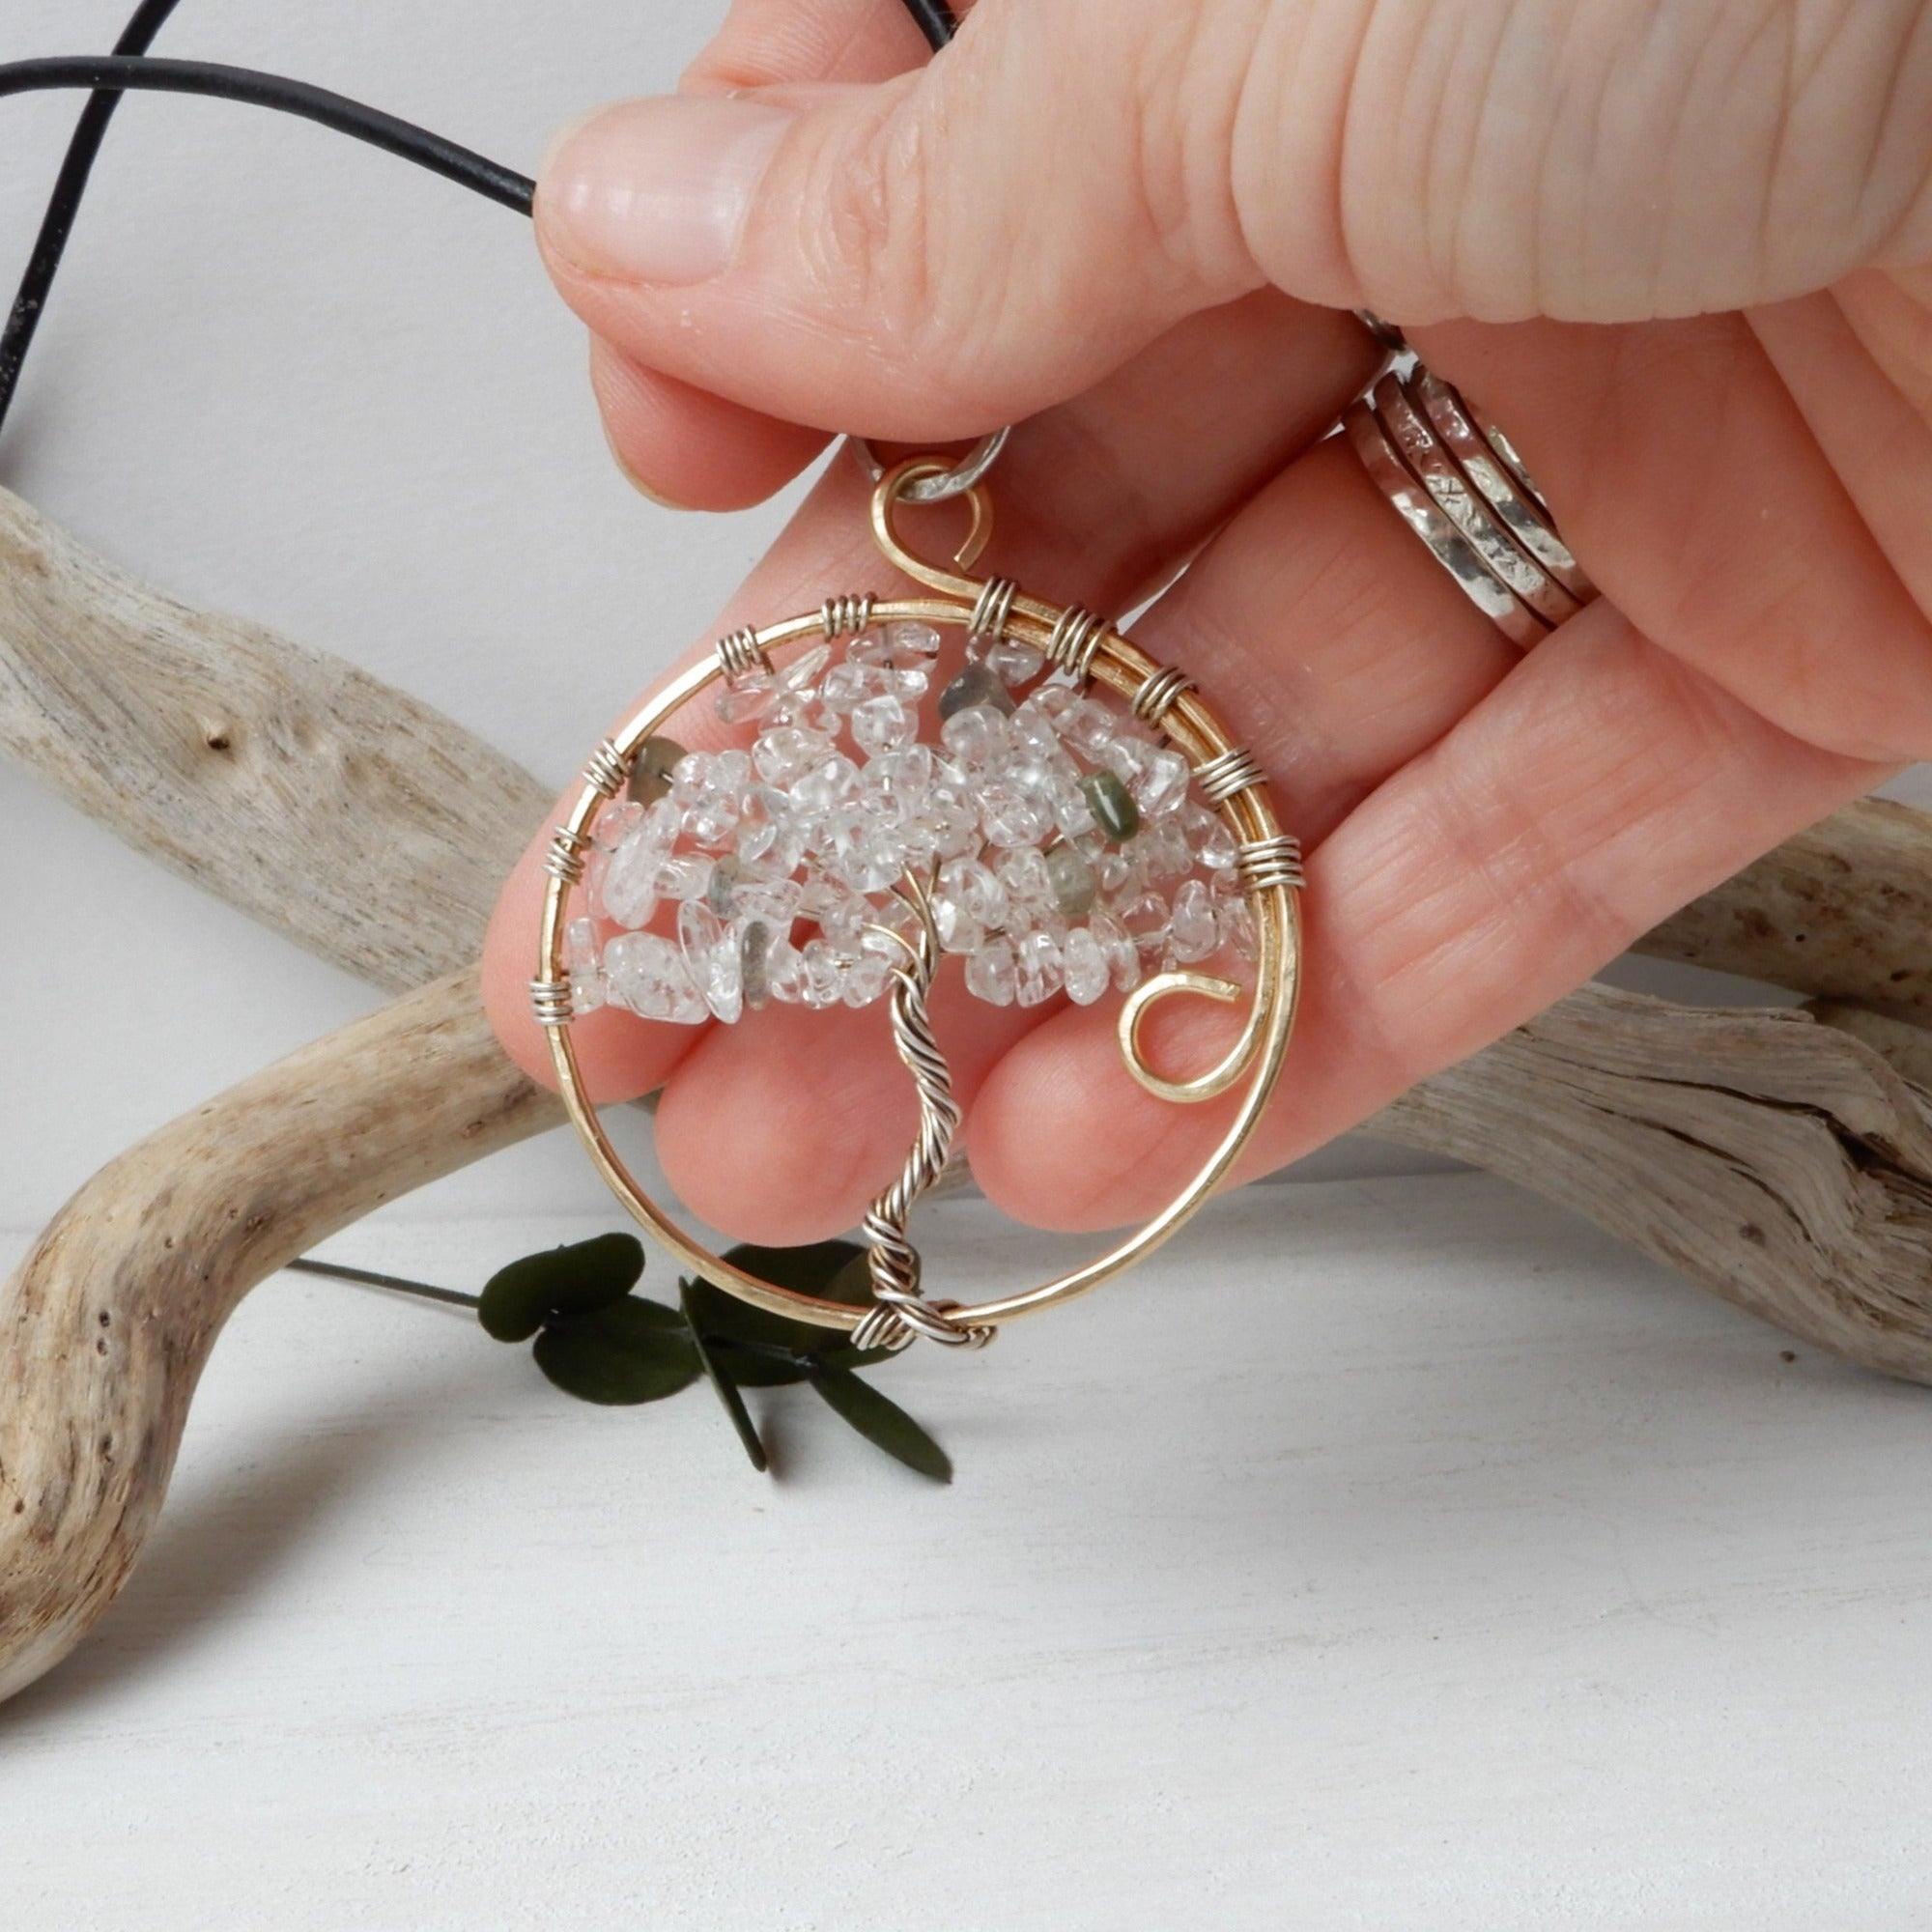 Necklace - Classic Tree Of Life Pendant In Mixed Metals And Gemstones - Necklace Pendant Gift For Nature Lover